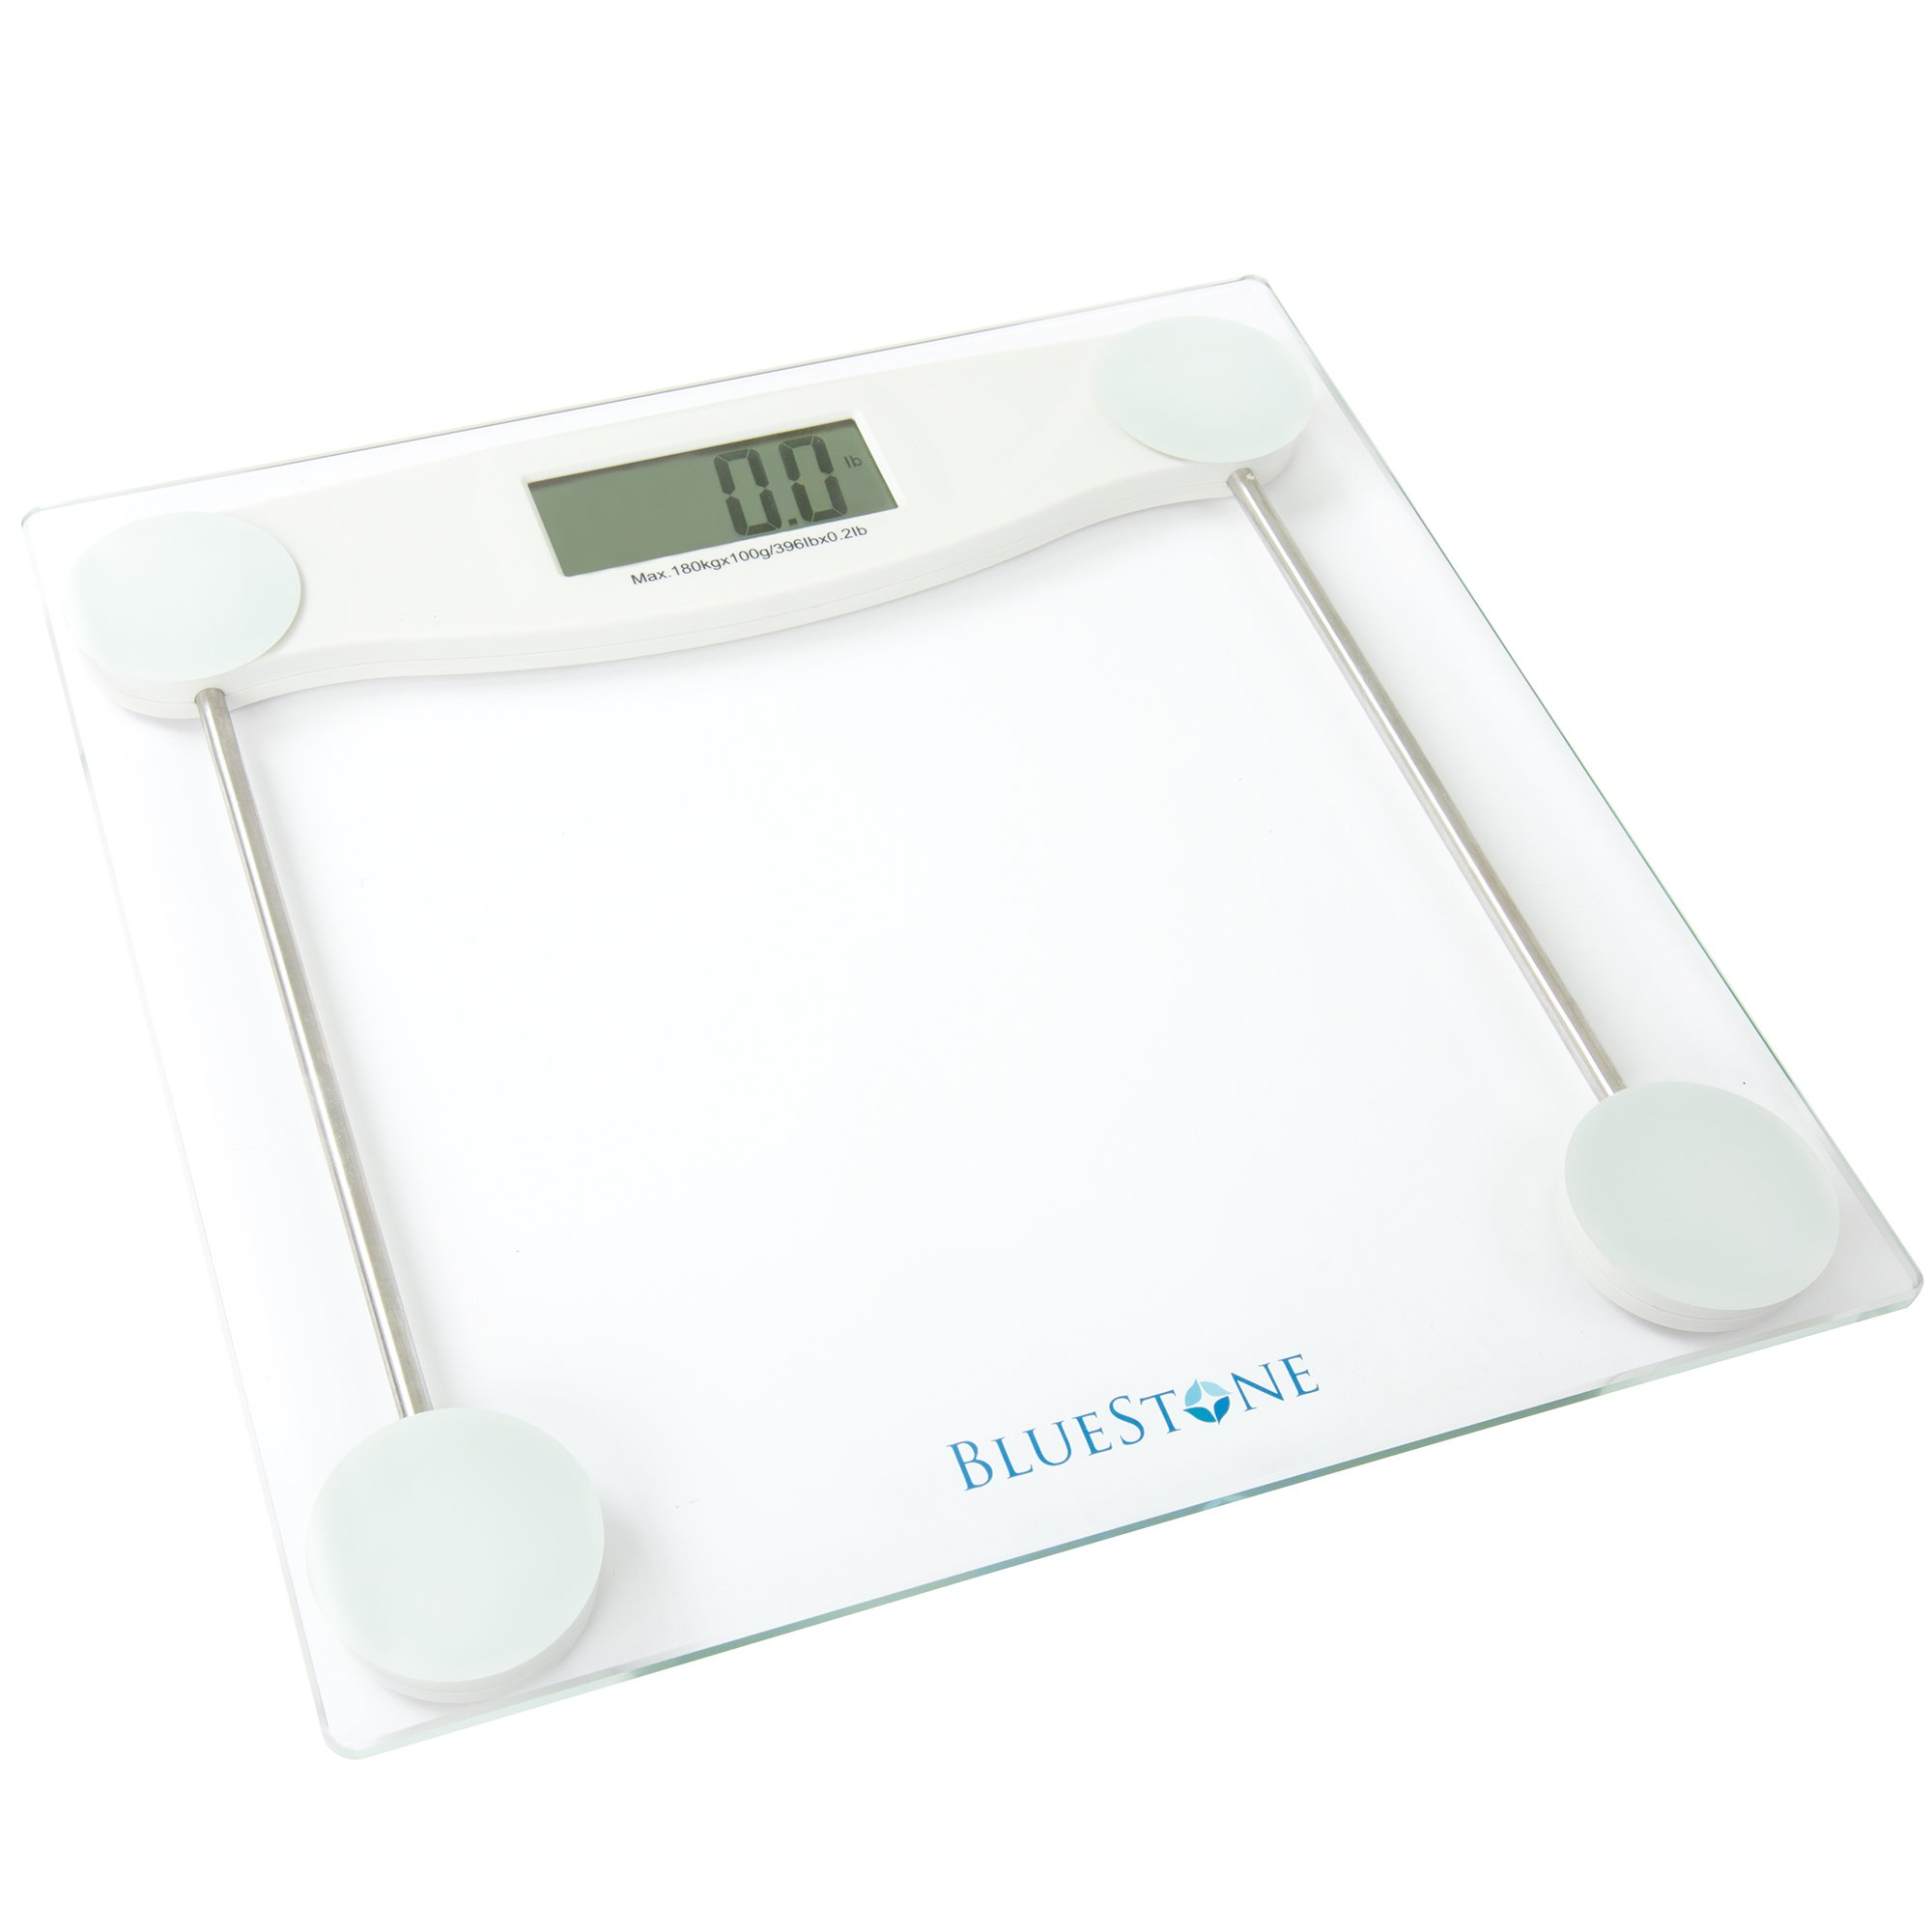 Digital Body Weight Bathroom Scale, Cordless Battery Operated Large LCD Display for Health and Fitness Tracking Scale by Bluestone- Clear Glass